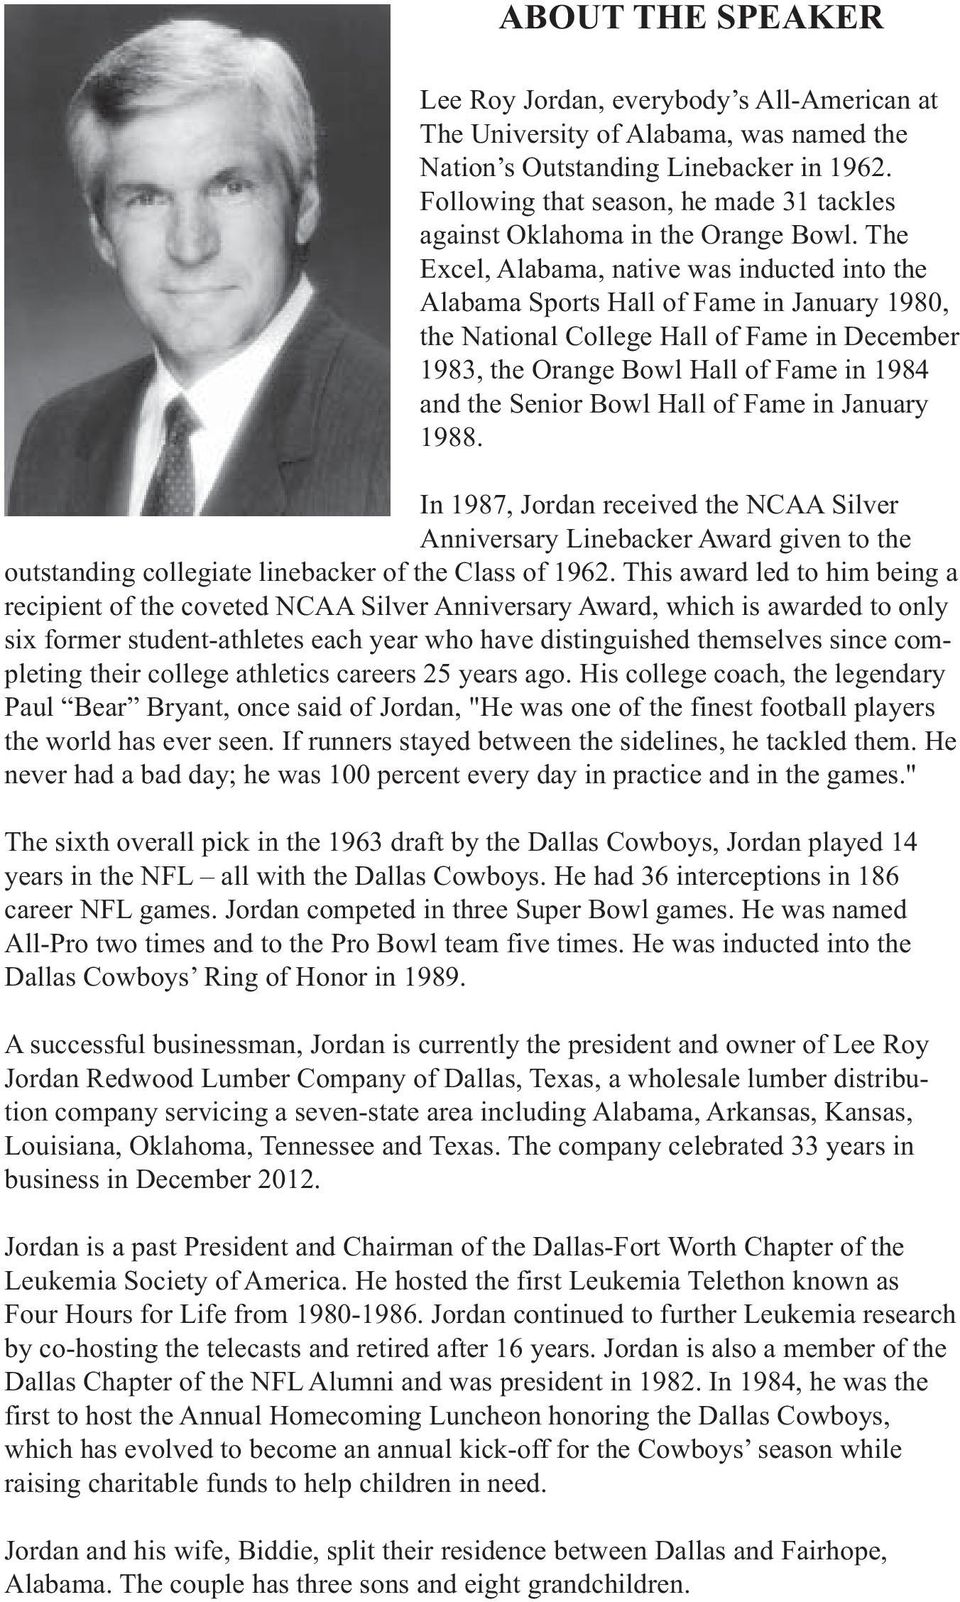 The Excel, Alabama, native was inducted into the Alabama Sports Hall of Fame in January 1980, the National College Hall of Fame in December 1983, the Orange Bowl Hall of Fame in 1984 and the Senior